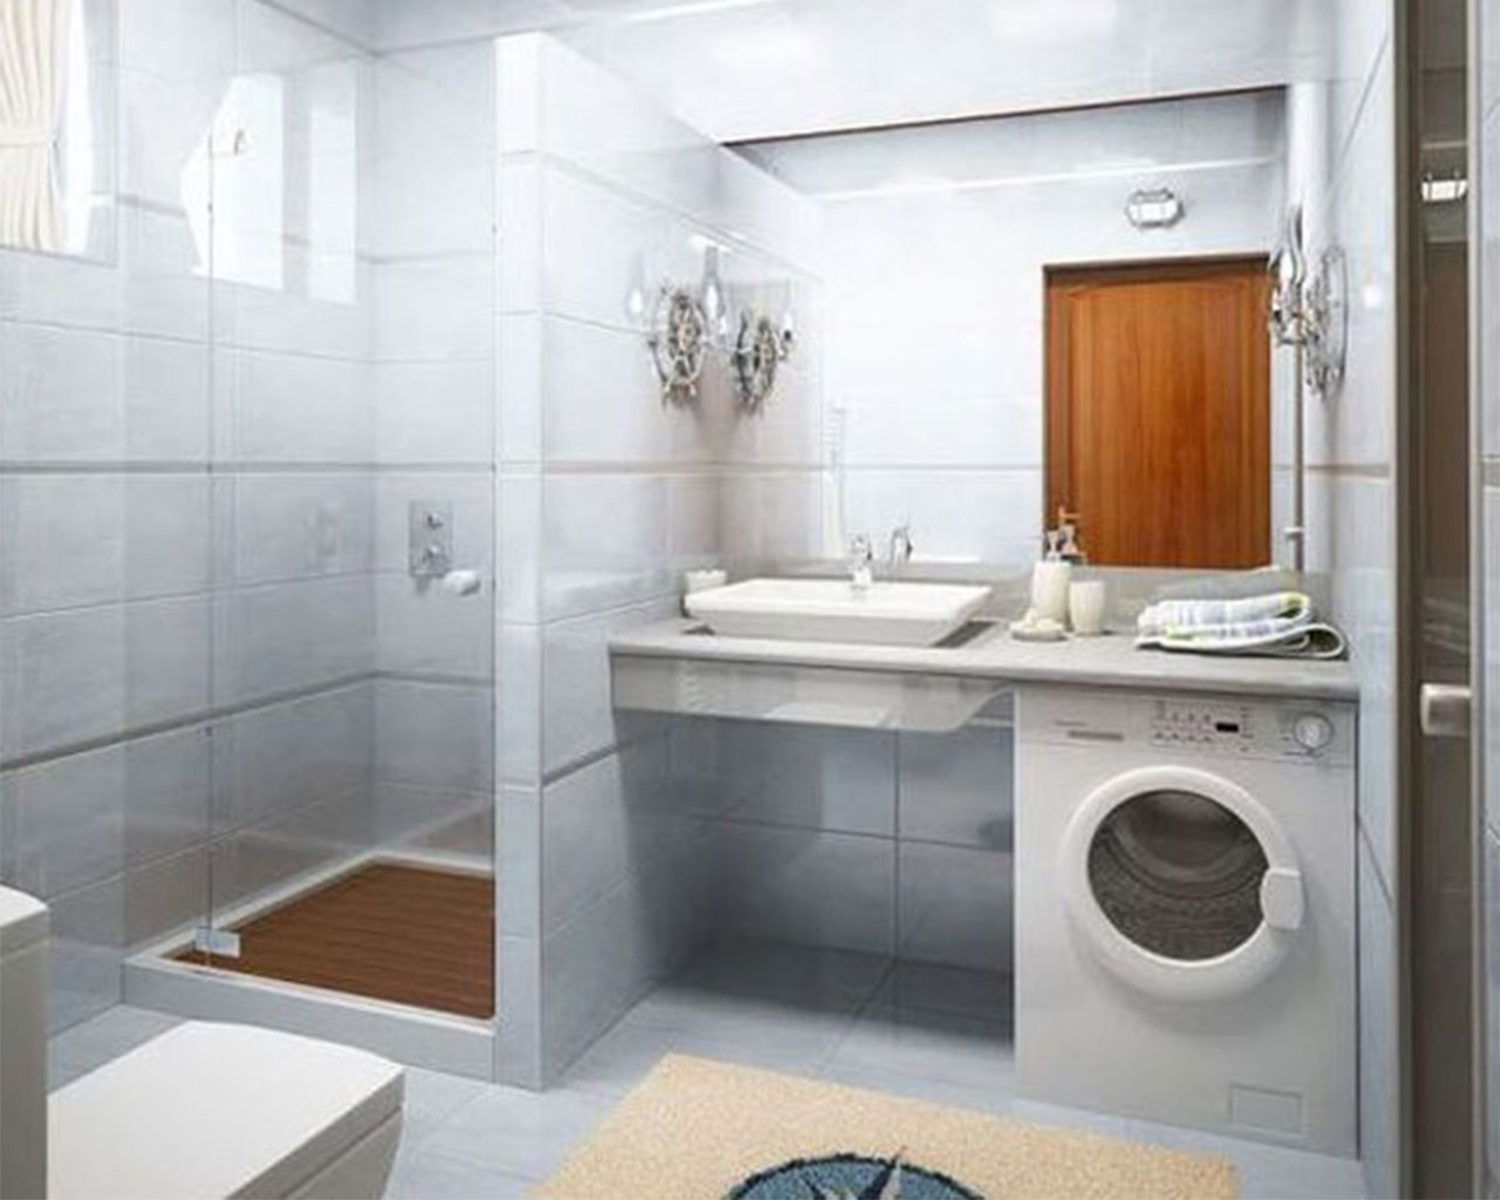 Download Simple Bathroom Design Idea With Washing Machine Image ...